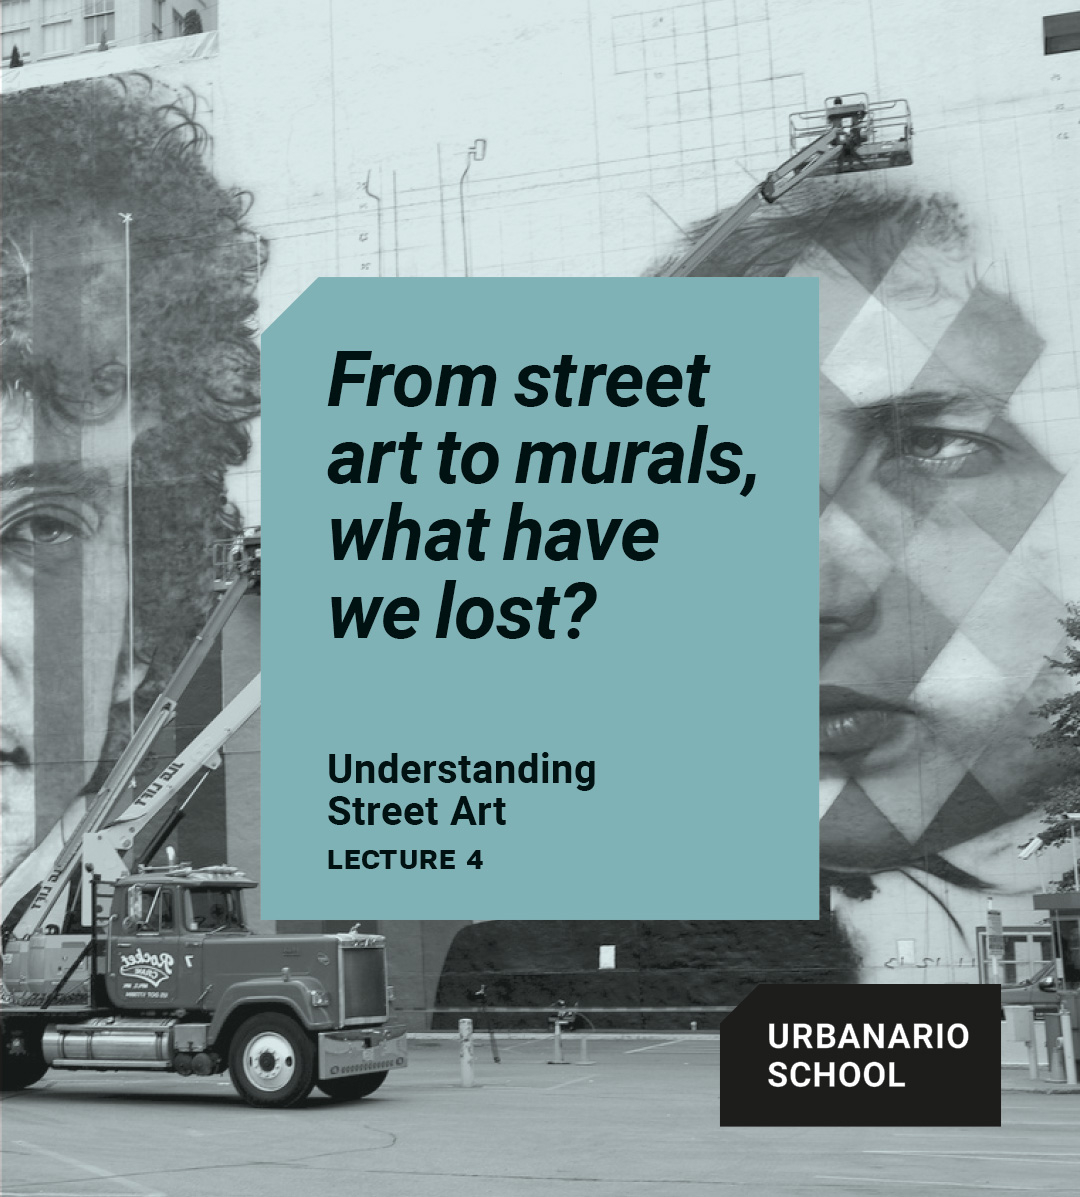 From street art to murals, what have we lost?